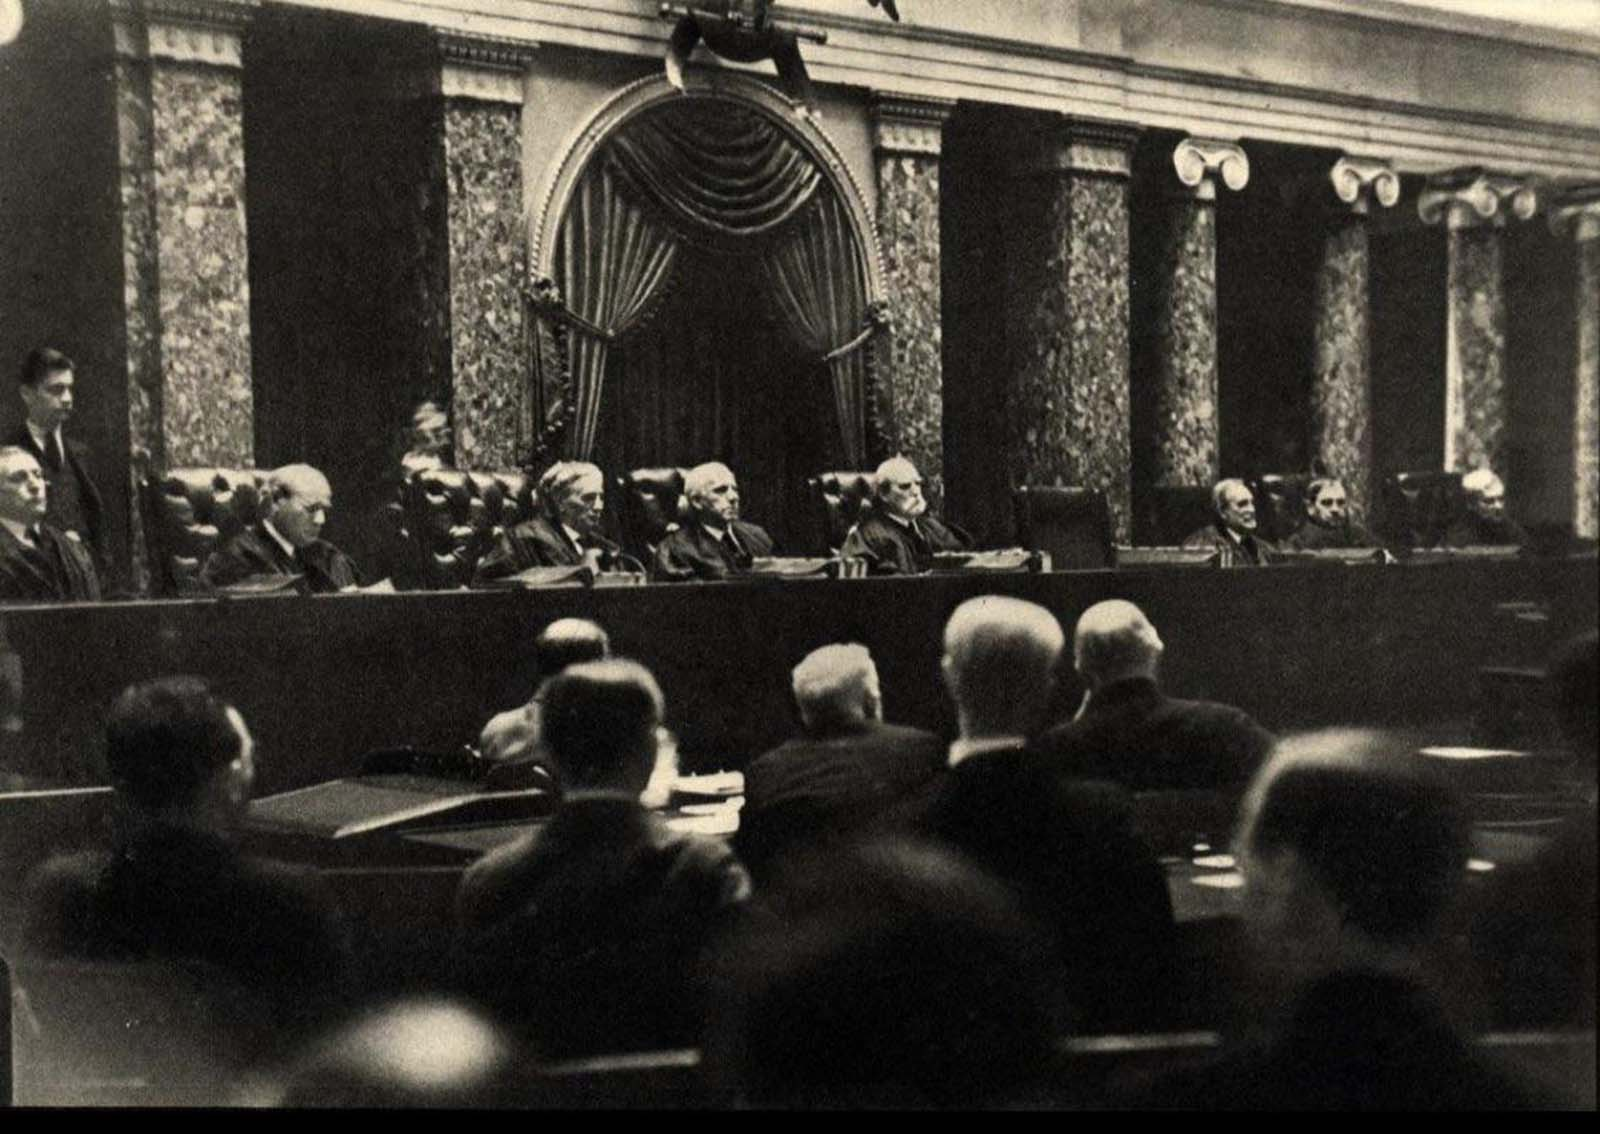 Illegal picture taken inside the US Supreme Court in 1932. Dr. Erich Salomon faked a broken arm so he could hide a camera in his cast.